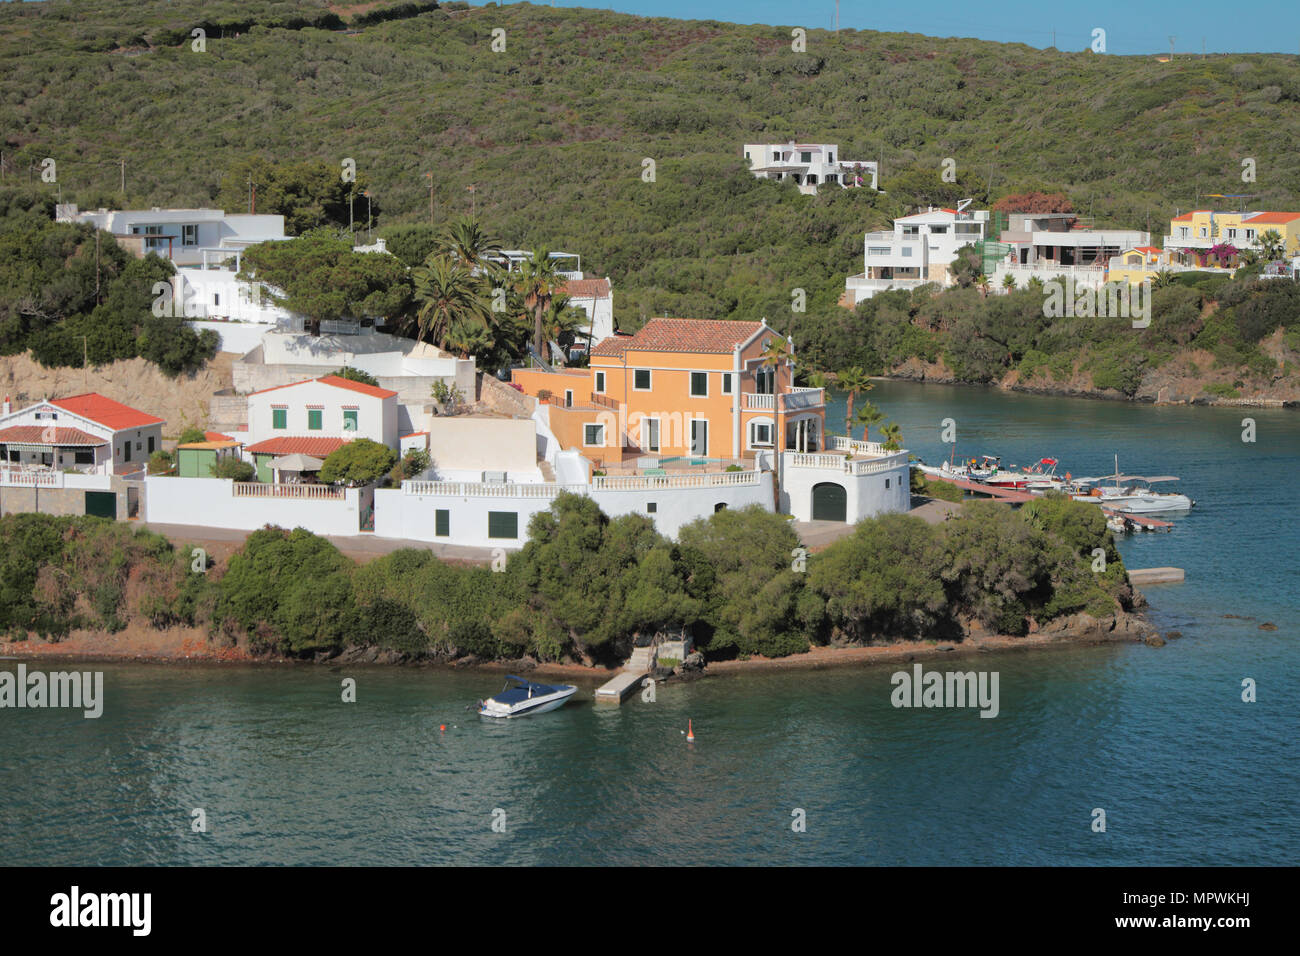 Sea gulf and country houses ashore. Mahon, Menorca, Spain - Stock Image